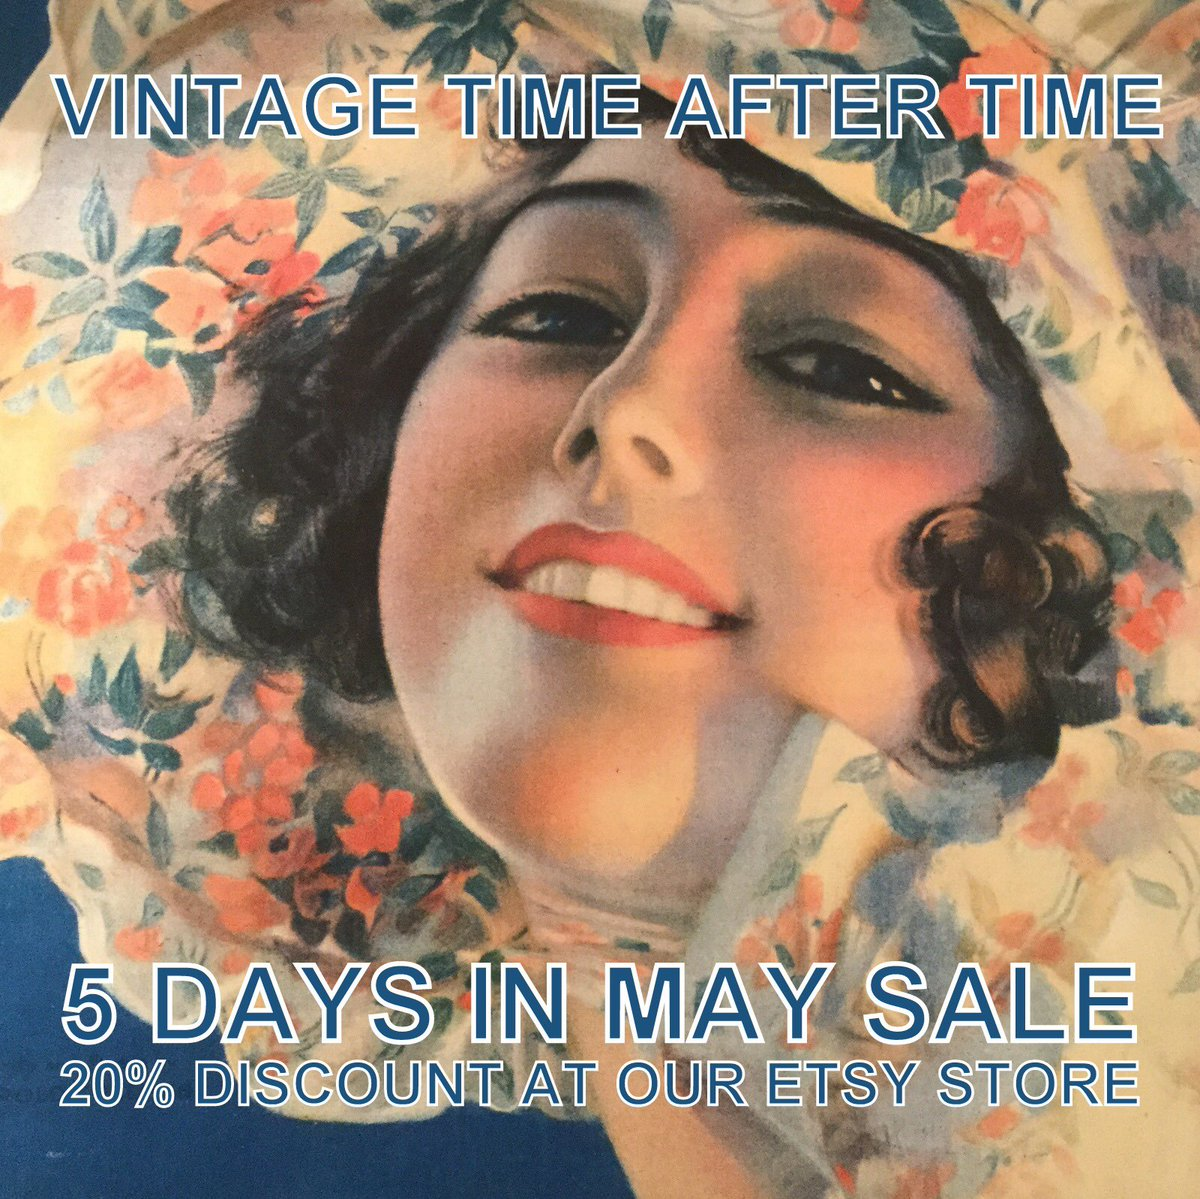 May Sale at our Etsy Store!  Our 20% Discount Sale will start at 00:01 PST on May 1st for 5 days.  Follow the link in our profile #sale #stroudvintage #vintagesale #antiquesale #vintage #antique #artdeco #artnouveau #twentypercent #mayday #menswear #womenswear #jewellery #jewelrypic.twitter.com/6yvx3B3sKQ